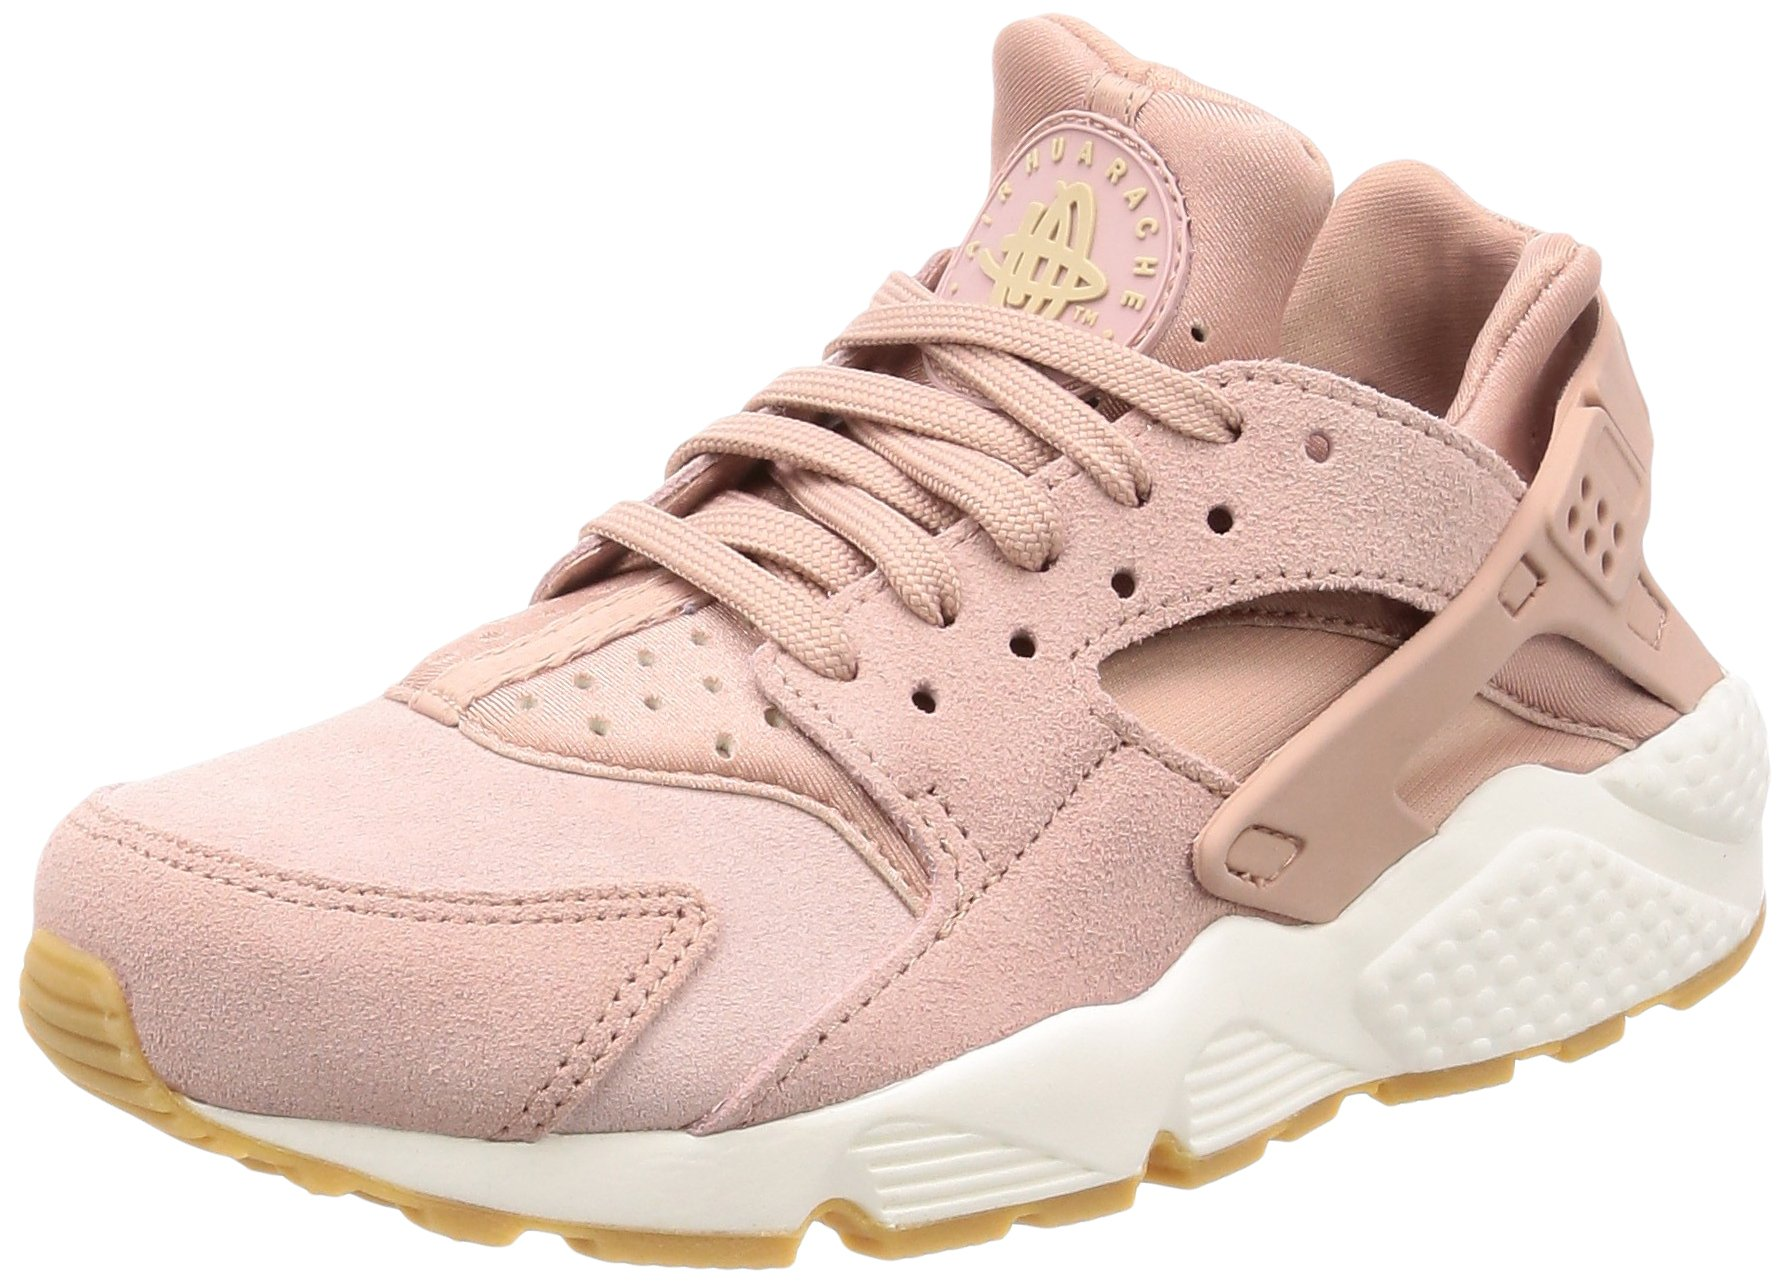 67e0d79b6c59 Galleon - Nike Air Huarache Run SD Women Particle Pink Gum AA0524-600 (7)